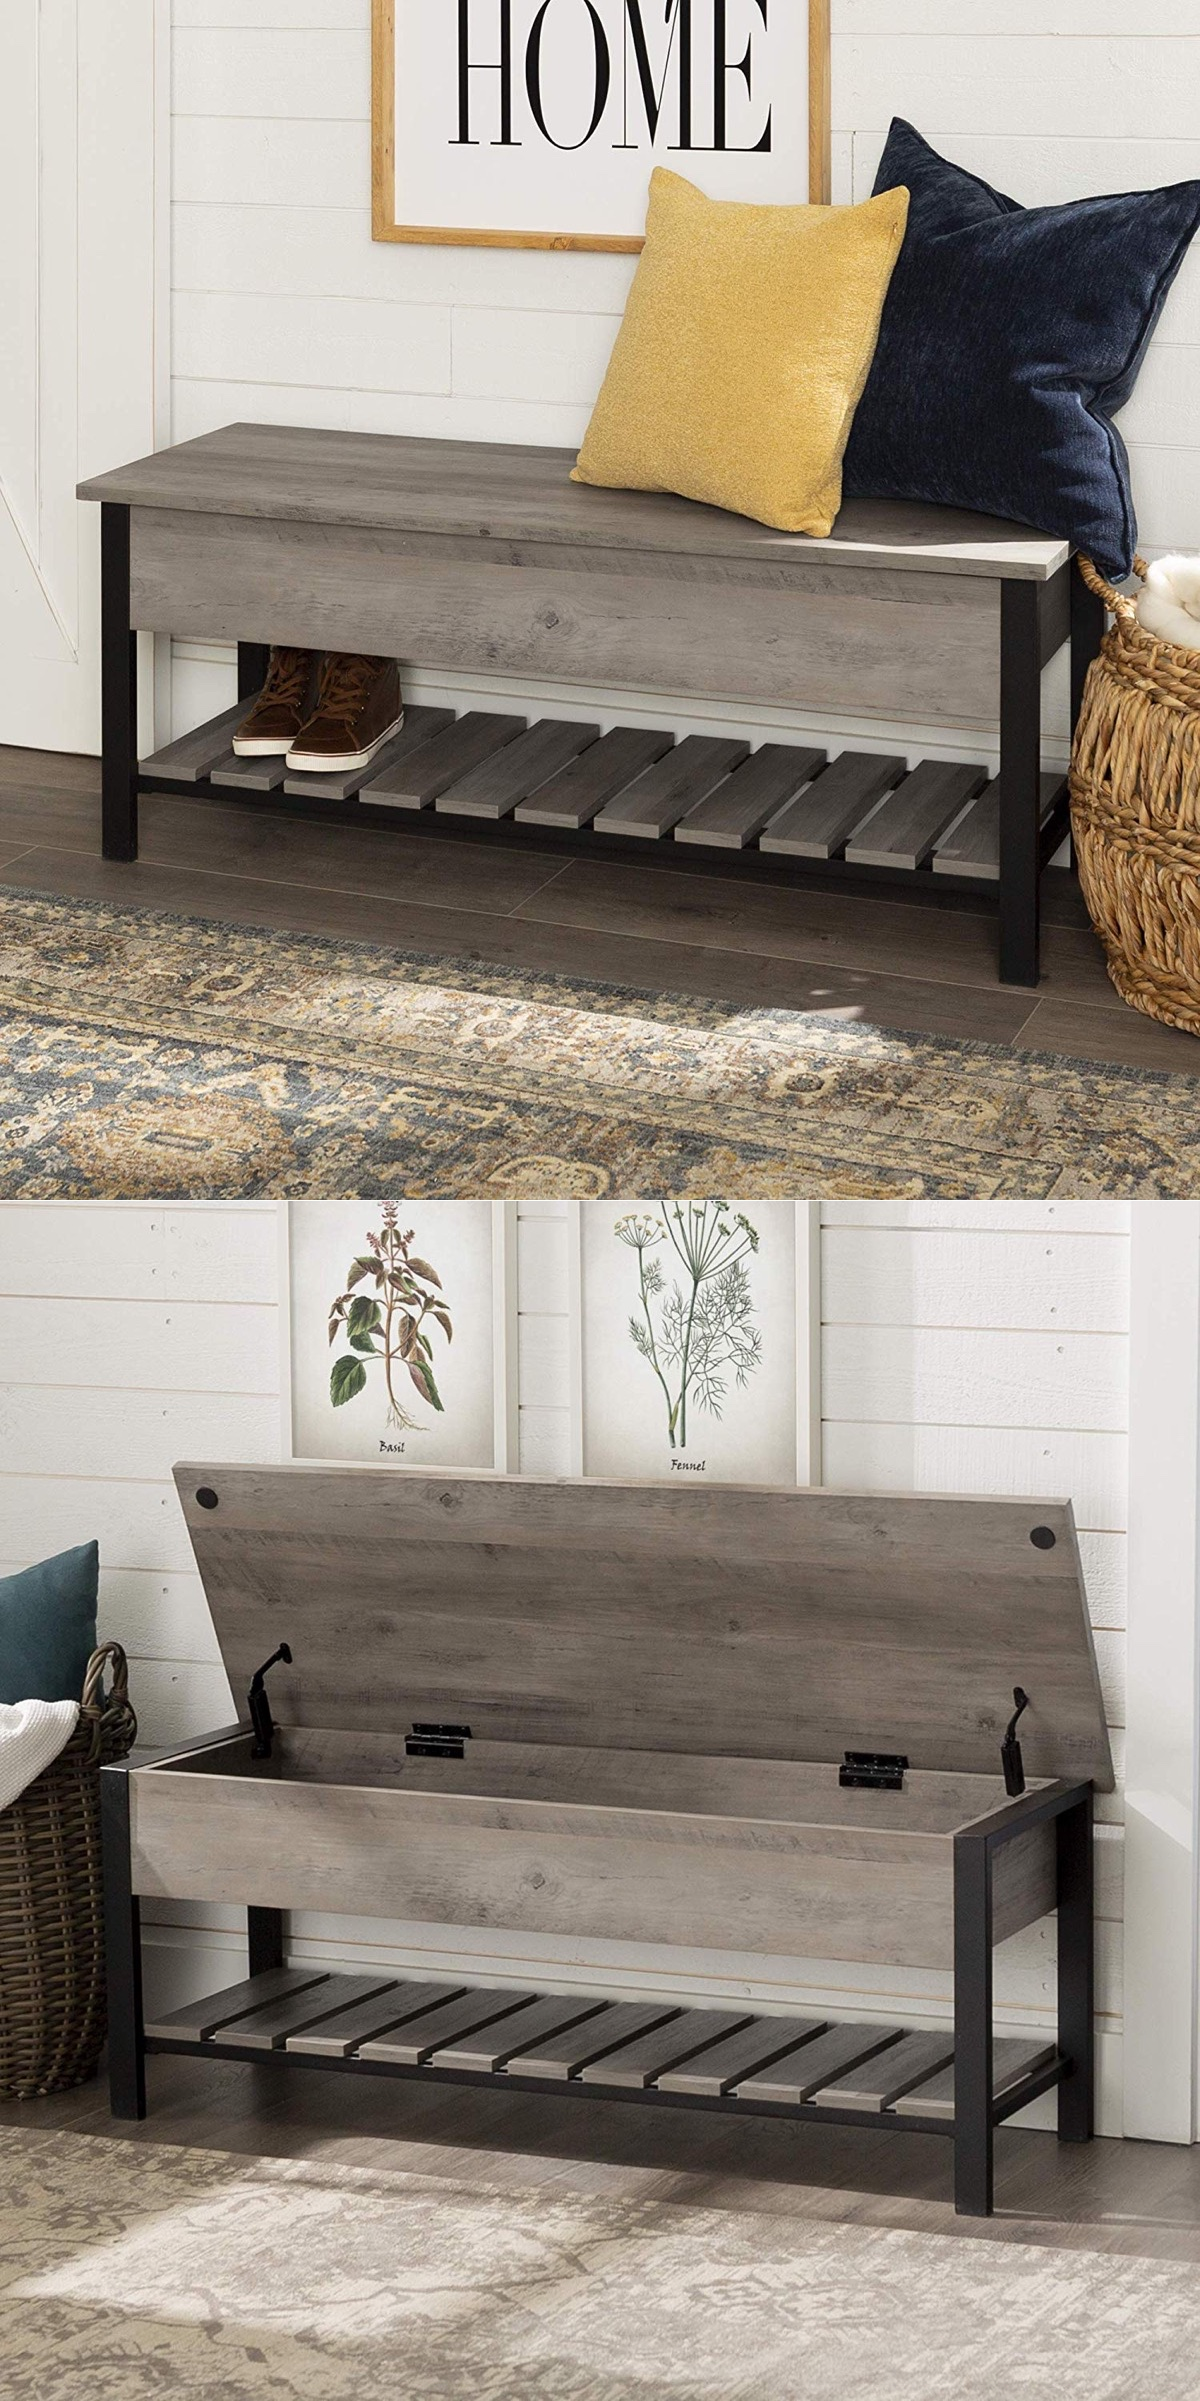 wooden-storage-bench-for-rustic-modern-and-industrial-interior-design